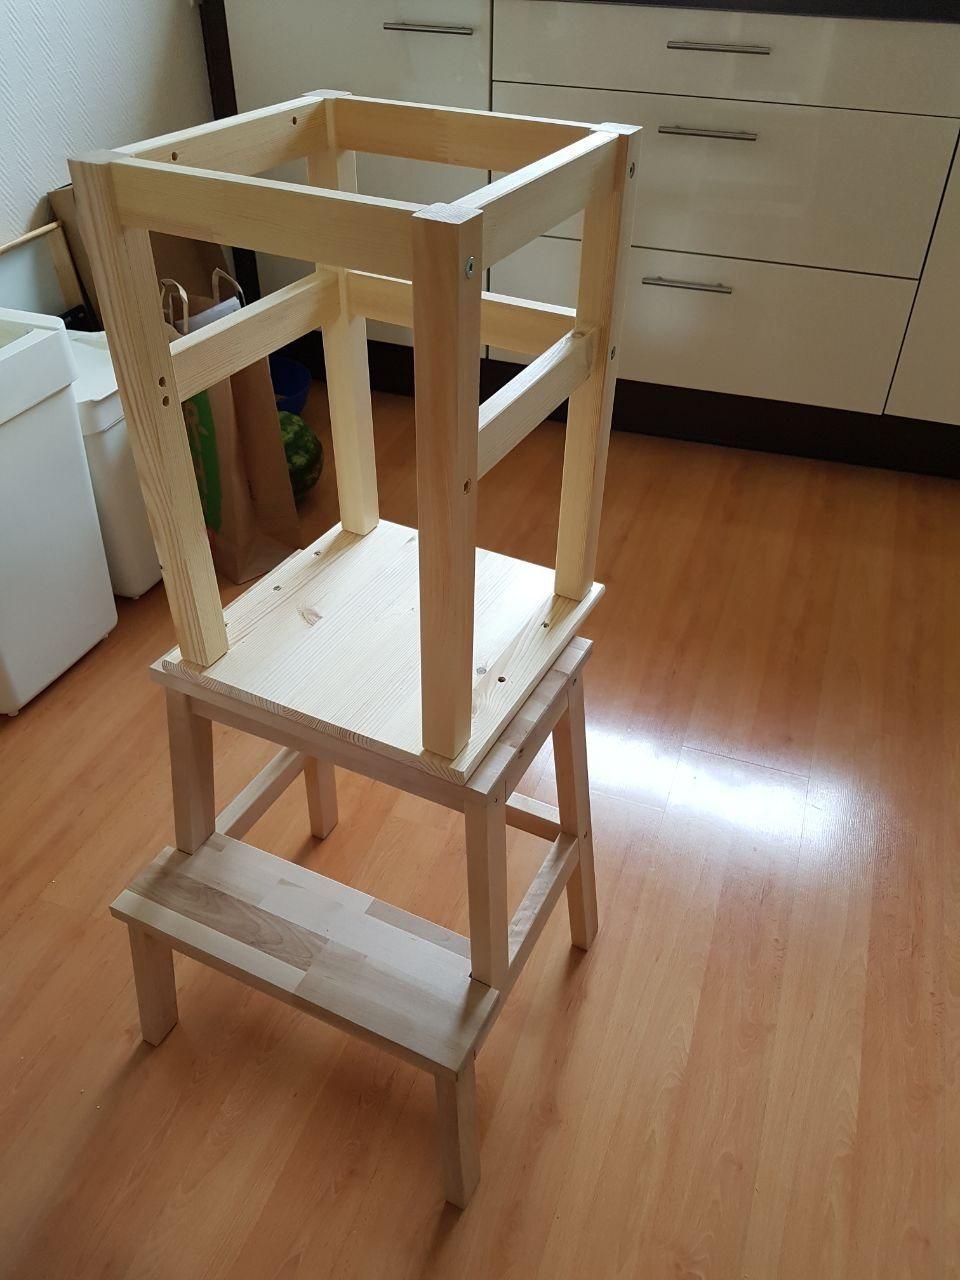 learning tower lernturm lernhochstuhl selbst gemacht mit ikea hocker m bel. Black Bedroom Furniture Sets. Home Design Ideas